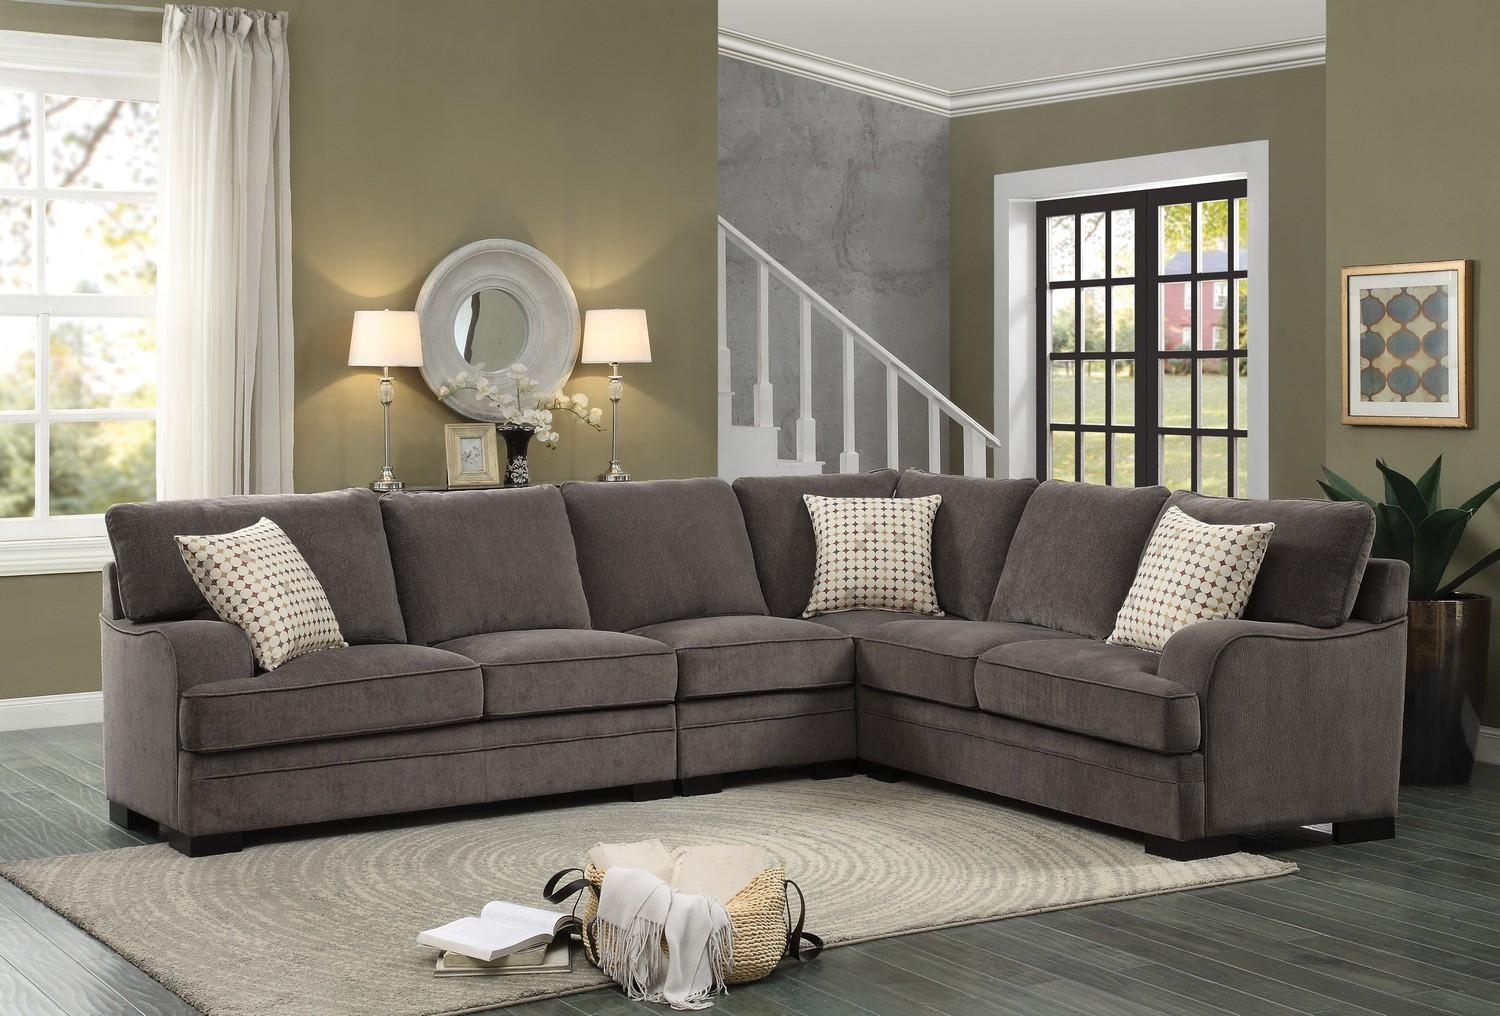 Homelegance Alamosa Sectional Sofa Set – Chenille – Brown 8335 With Chenille Sectionals (View 2 of 15)